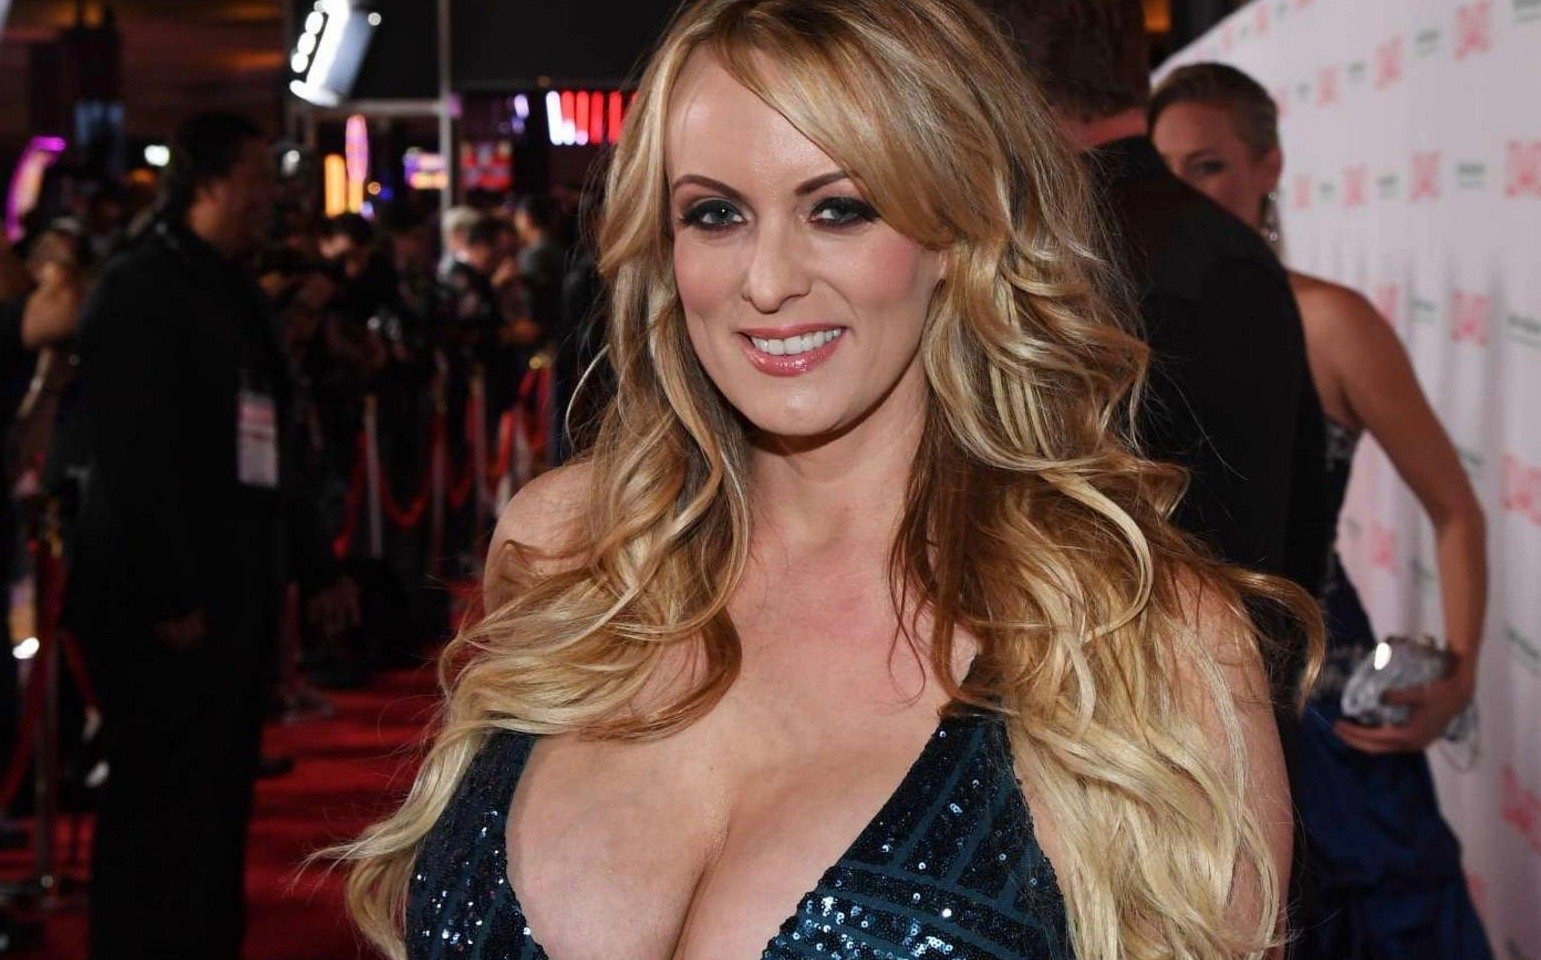 I can now tell my story, says porn star linked to Trump